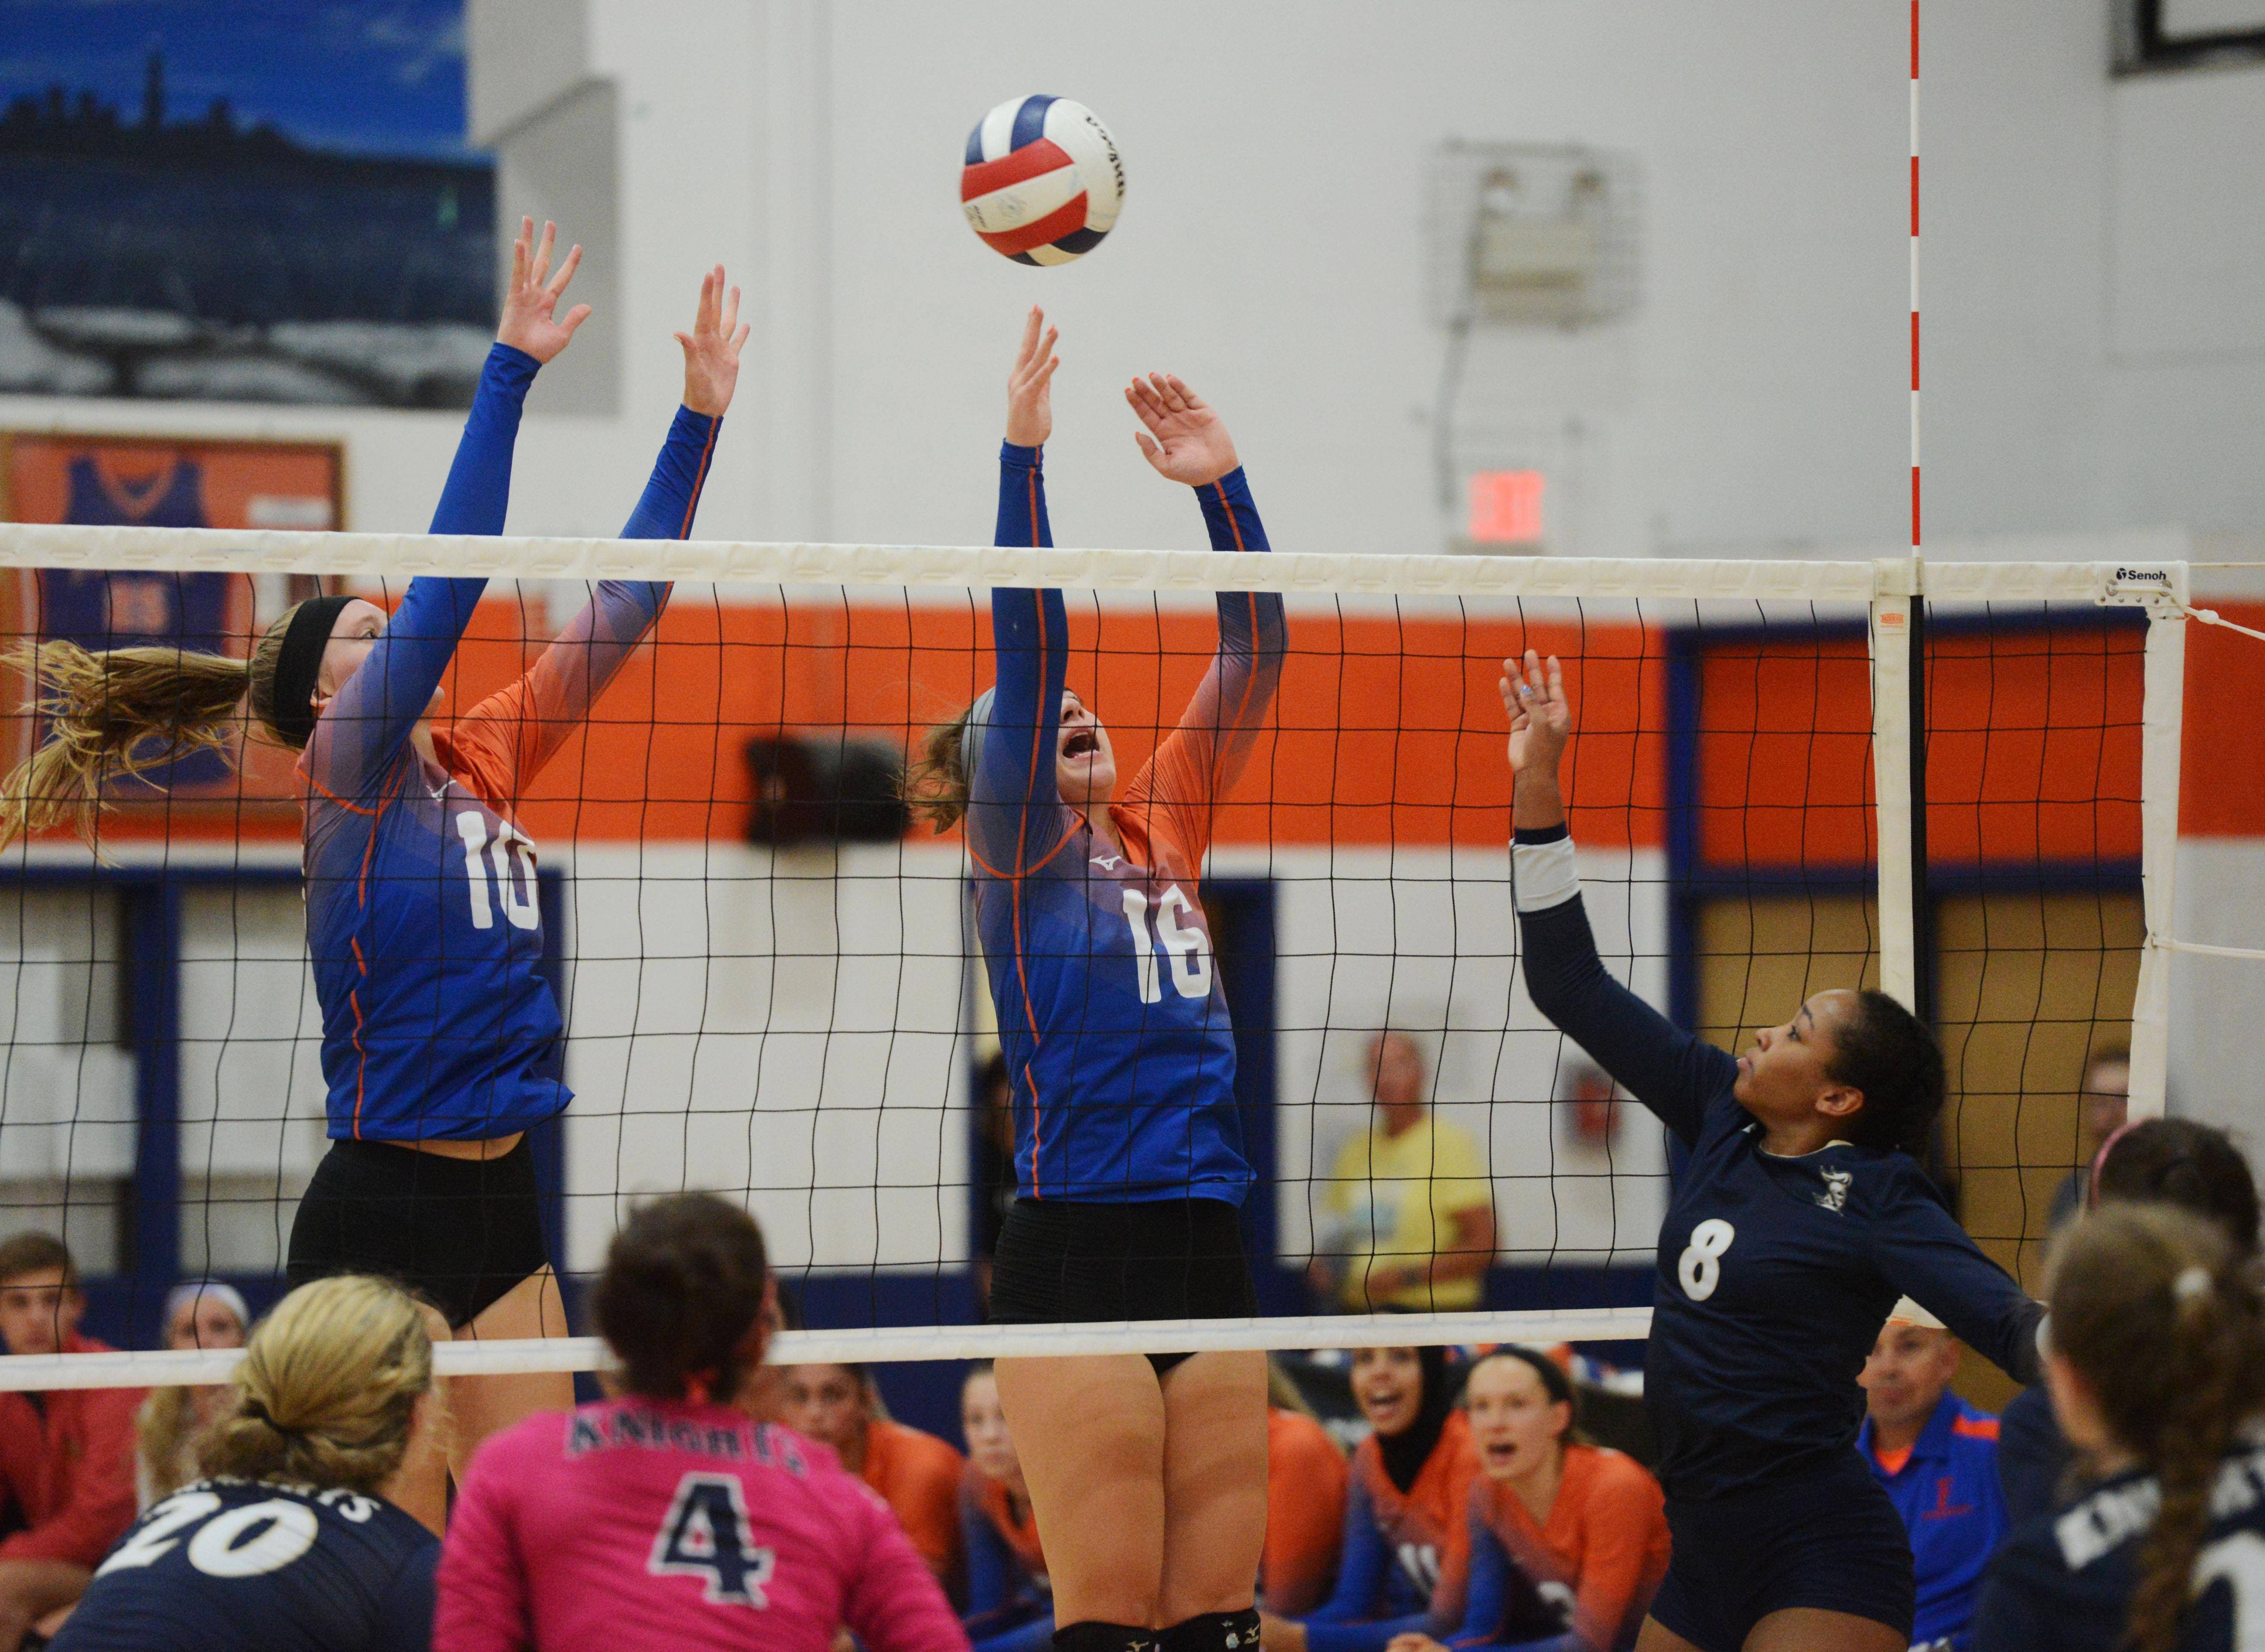 IC Catholic Prep's Maya Stovall, right, tries hit the ball past Fenton's Julianna Krebasch, left, and Agata Kukielko during Tuesday's girls volleyball match in Bensenville.